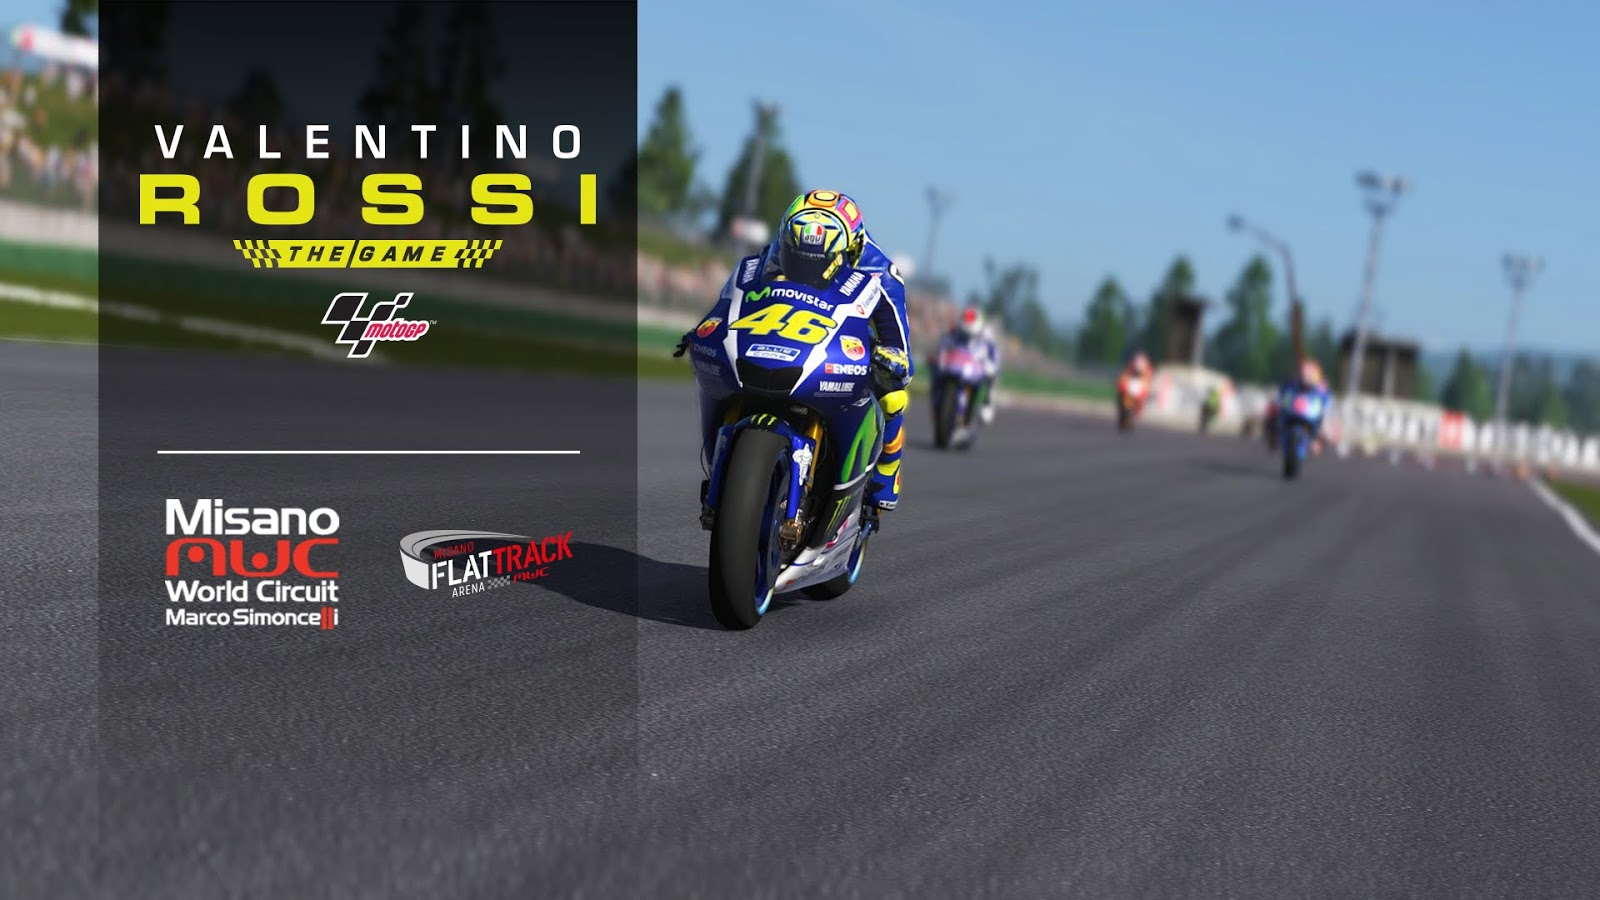 Valentino Rossi : The Game Full Cracked PC Game Free Download - Computer Software